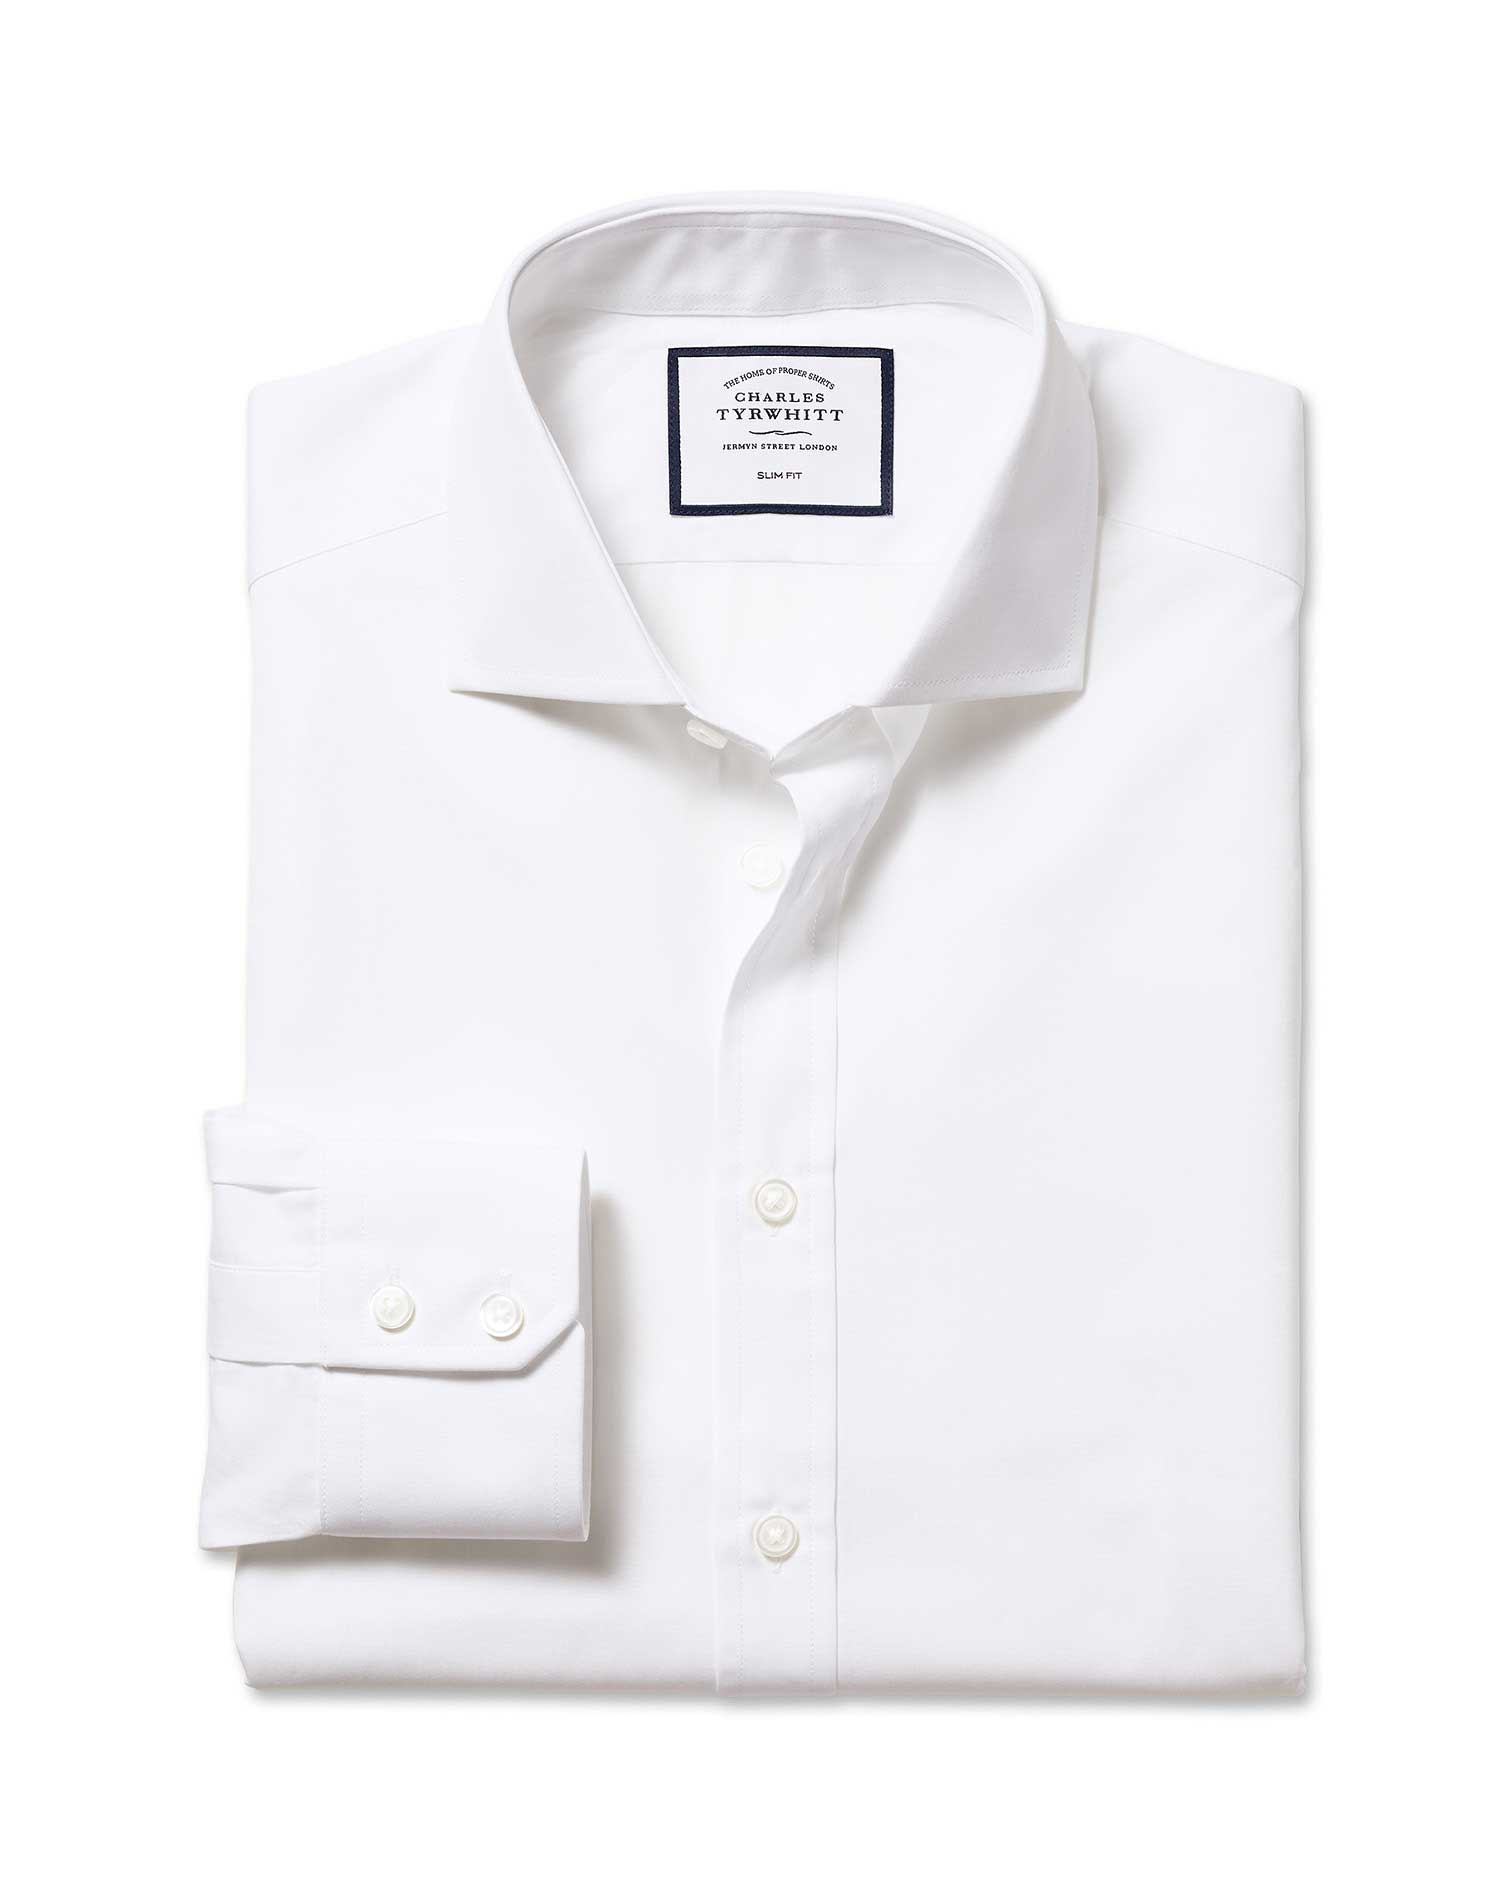 Slim Fit White Egyptian Cotton Poplin Cutaway Collar Formal Shirt Double Cuff Size 15.5/35 by Charle